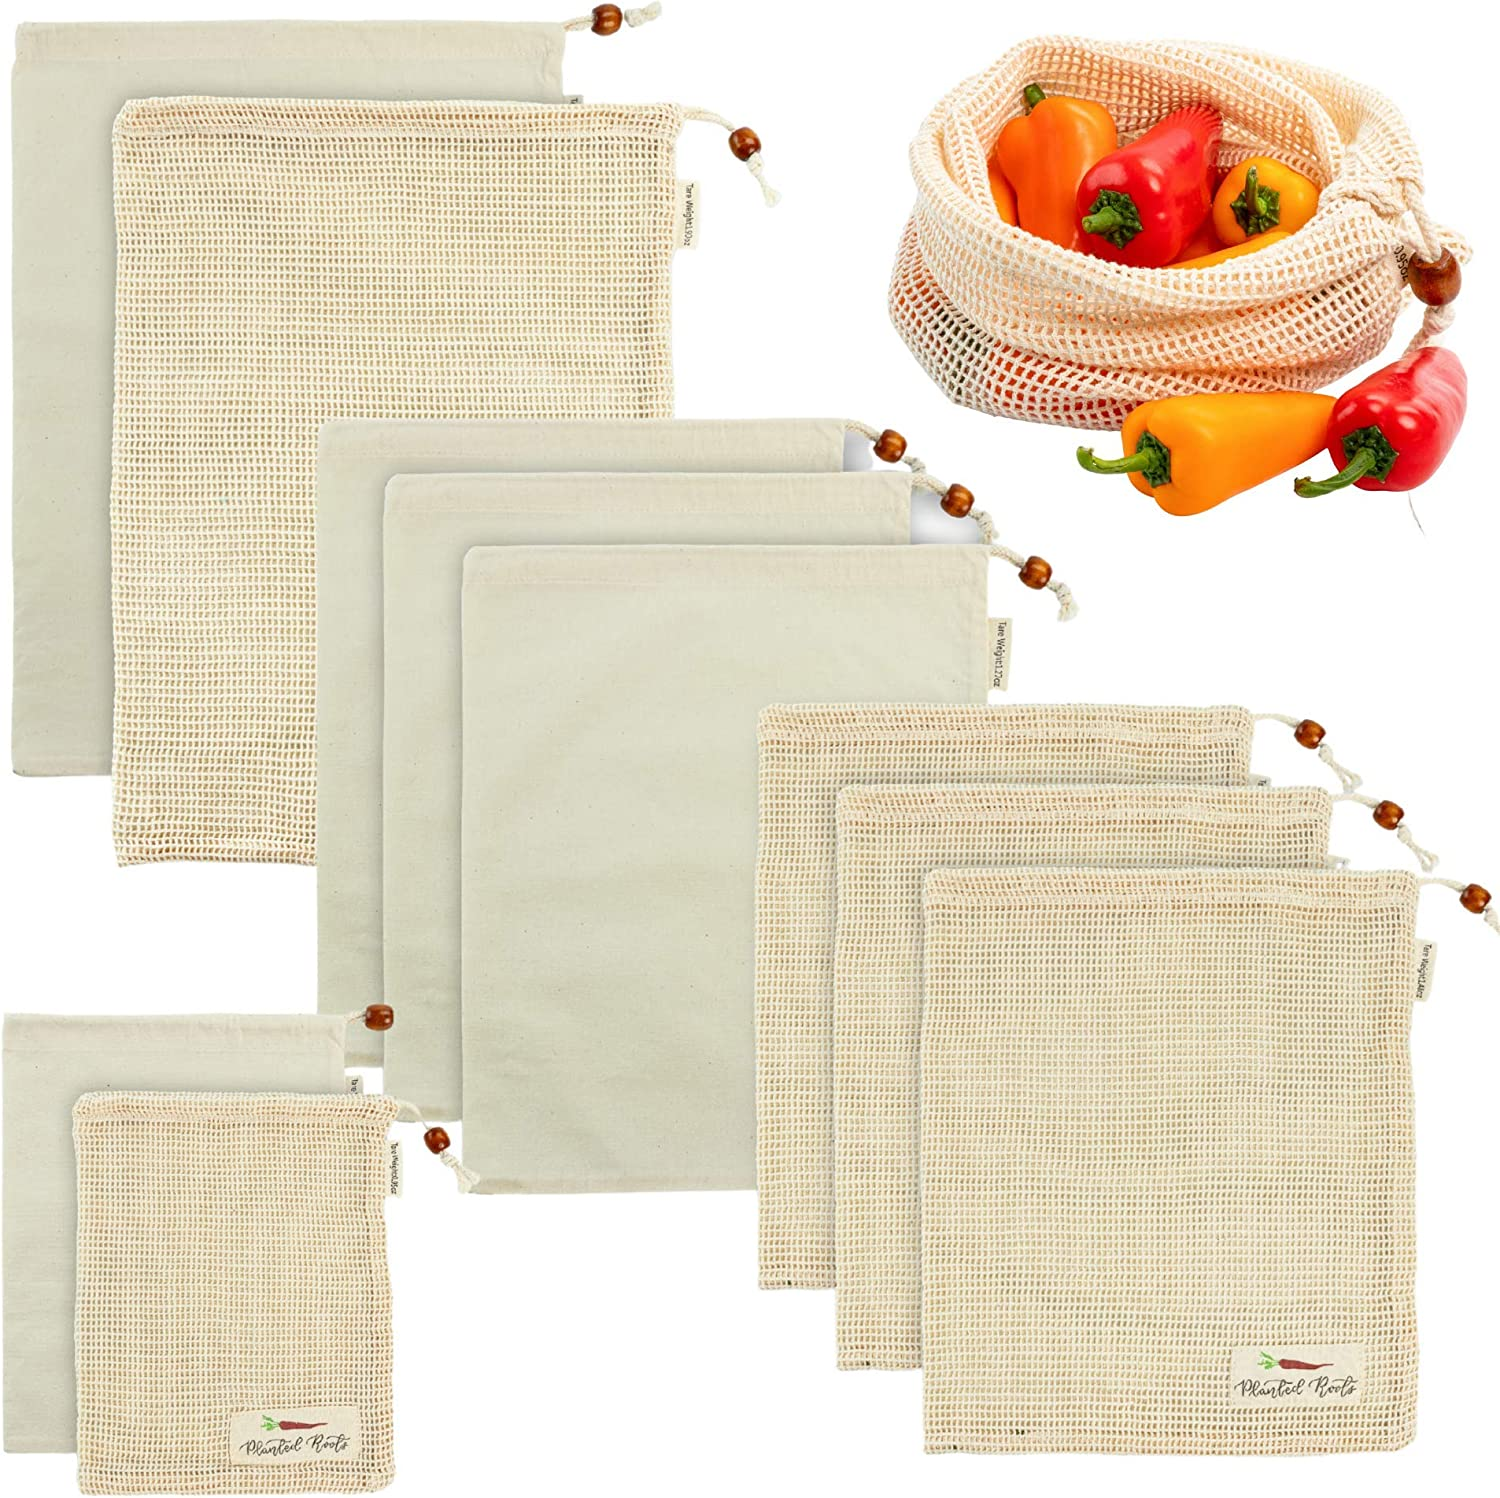 Planted Roots Reusable Produce Grocery Bags 100% Organic Cotton 10 Pack Eco Friendly Zero Waste Zero Plastic Muslin and Mesh Veggie Storage Biodegradable Tare Weight Tag Double Stitched Bulk Food